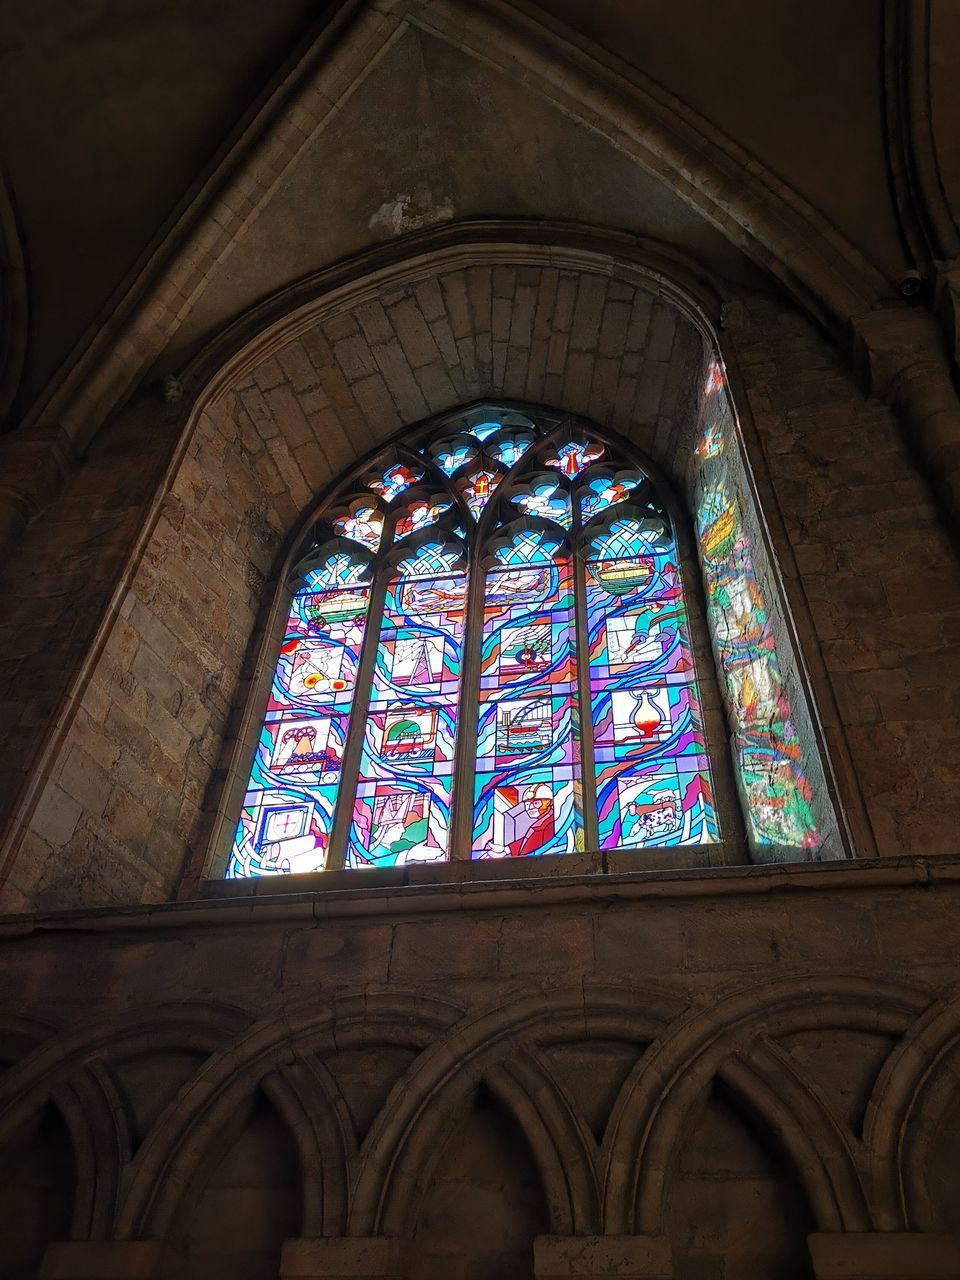 place of worship, built structure, religion, stained glass, spirituality, belief, architecture, window, glass, building, low angle view, glass - material, no people, arch, multi colored, indoors, ornate, ceiling, floral pattern, architecture and art